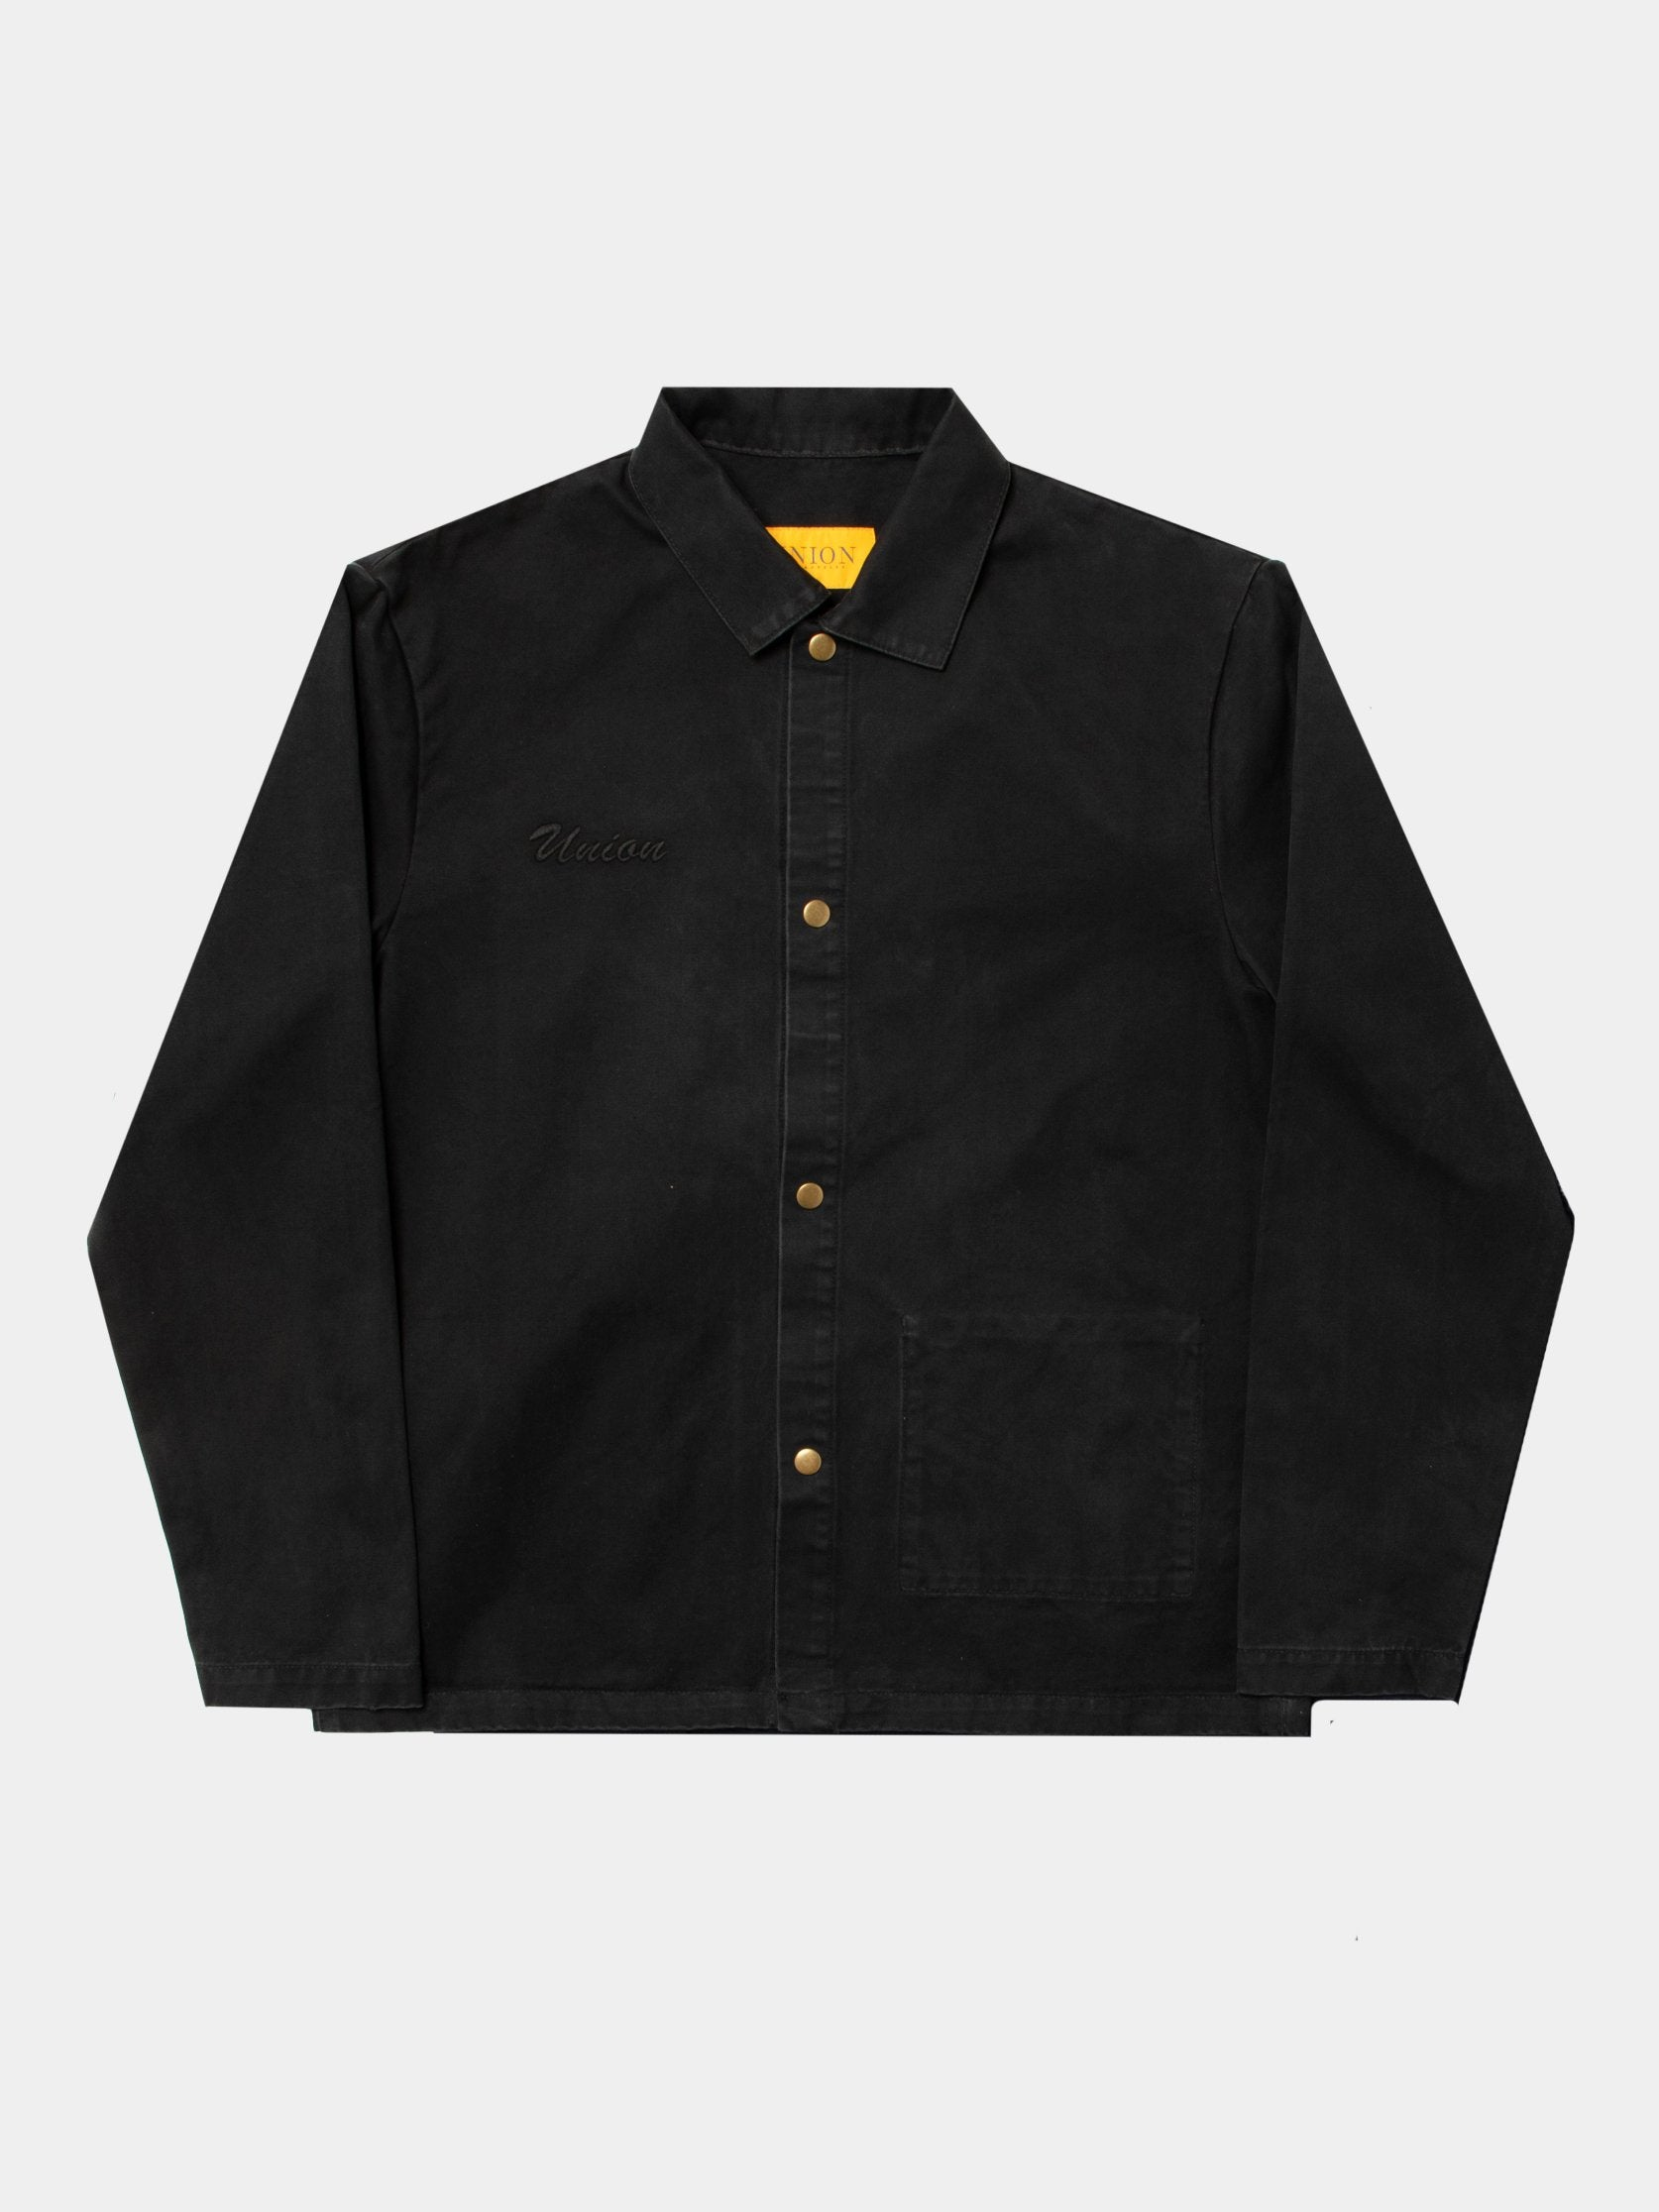 Union Core Welders Jacket